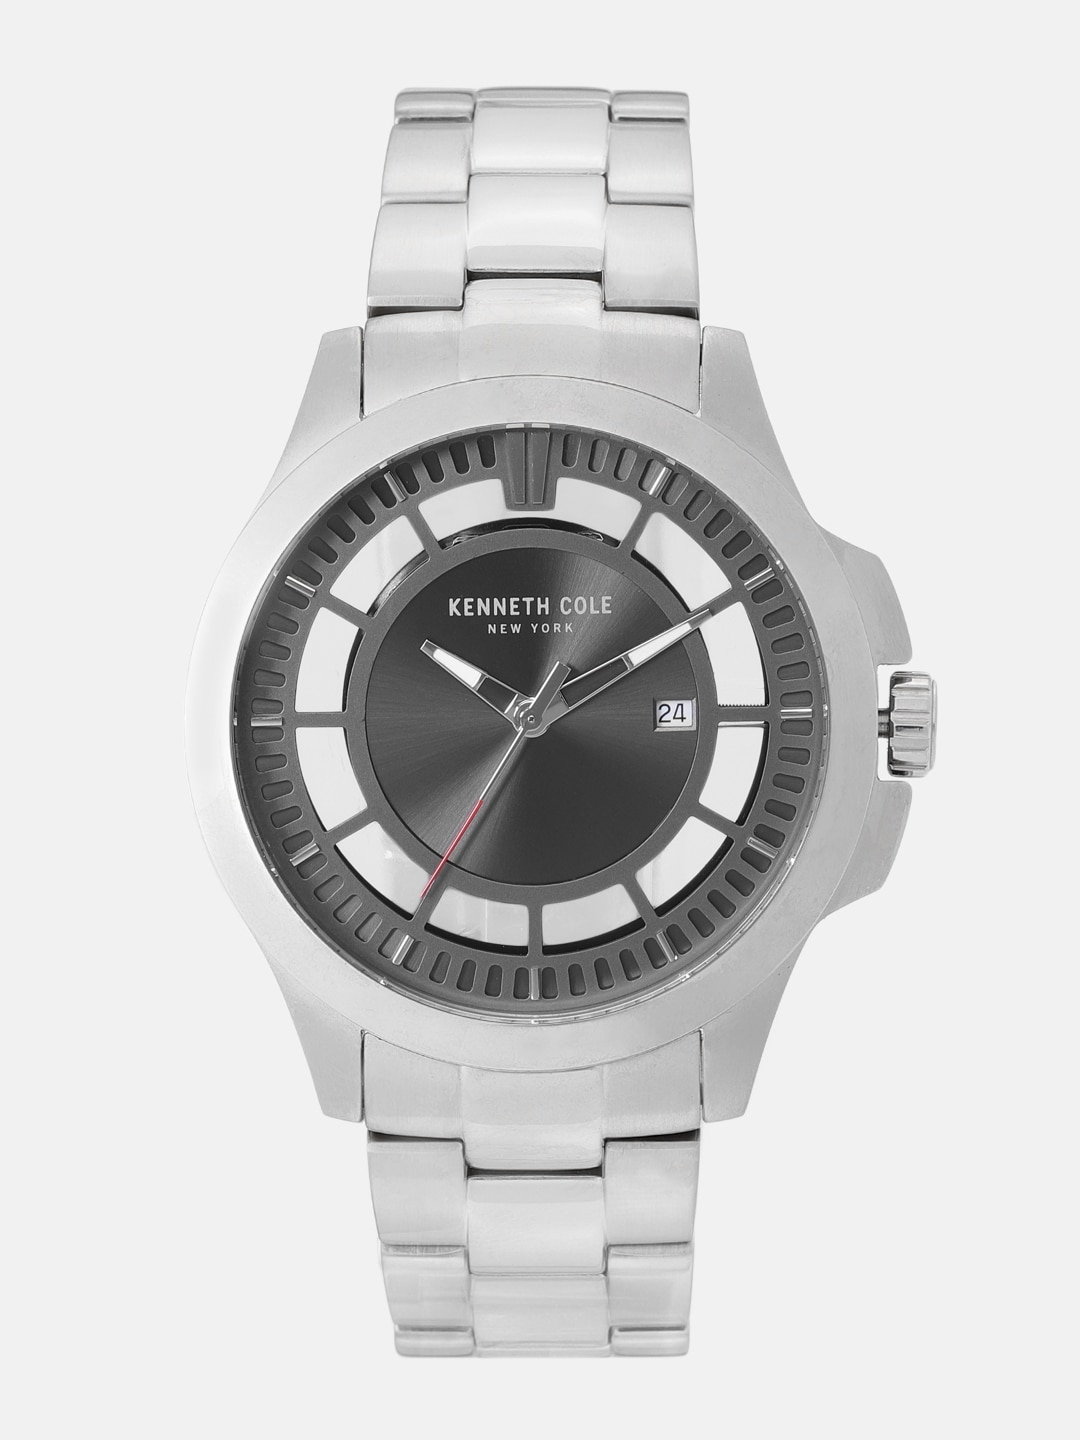 9c3667d63a57 Kenneth Cole Store - Buy Kenneth Cole Products Online